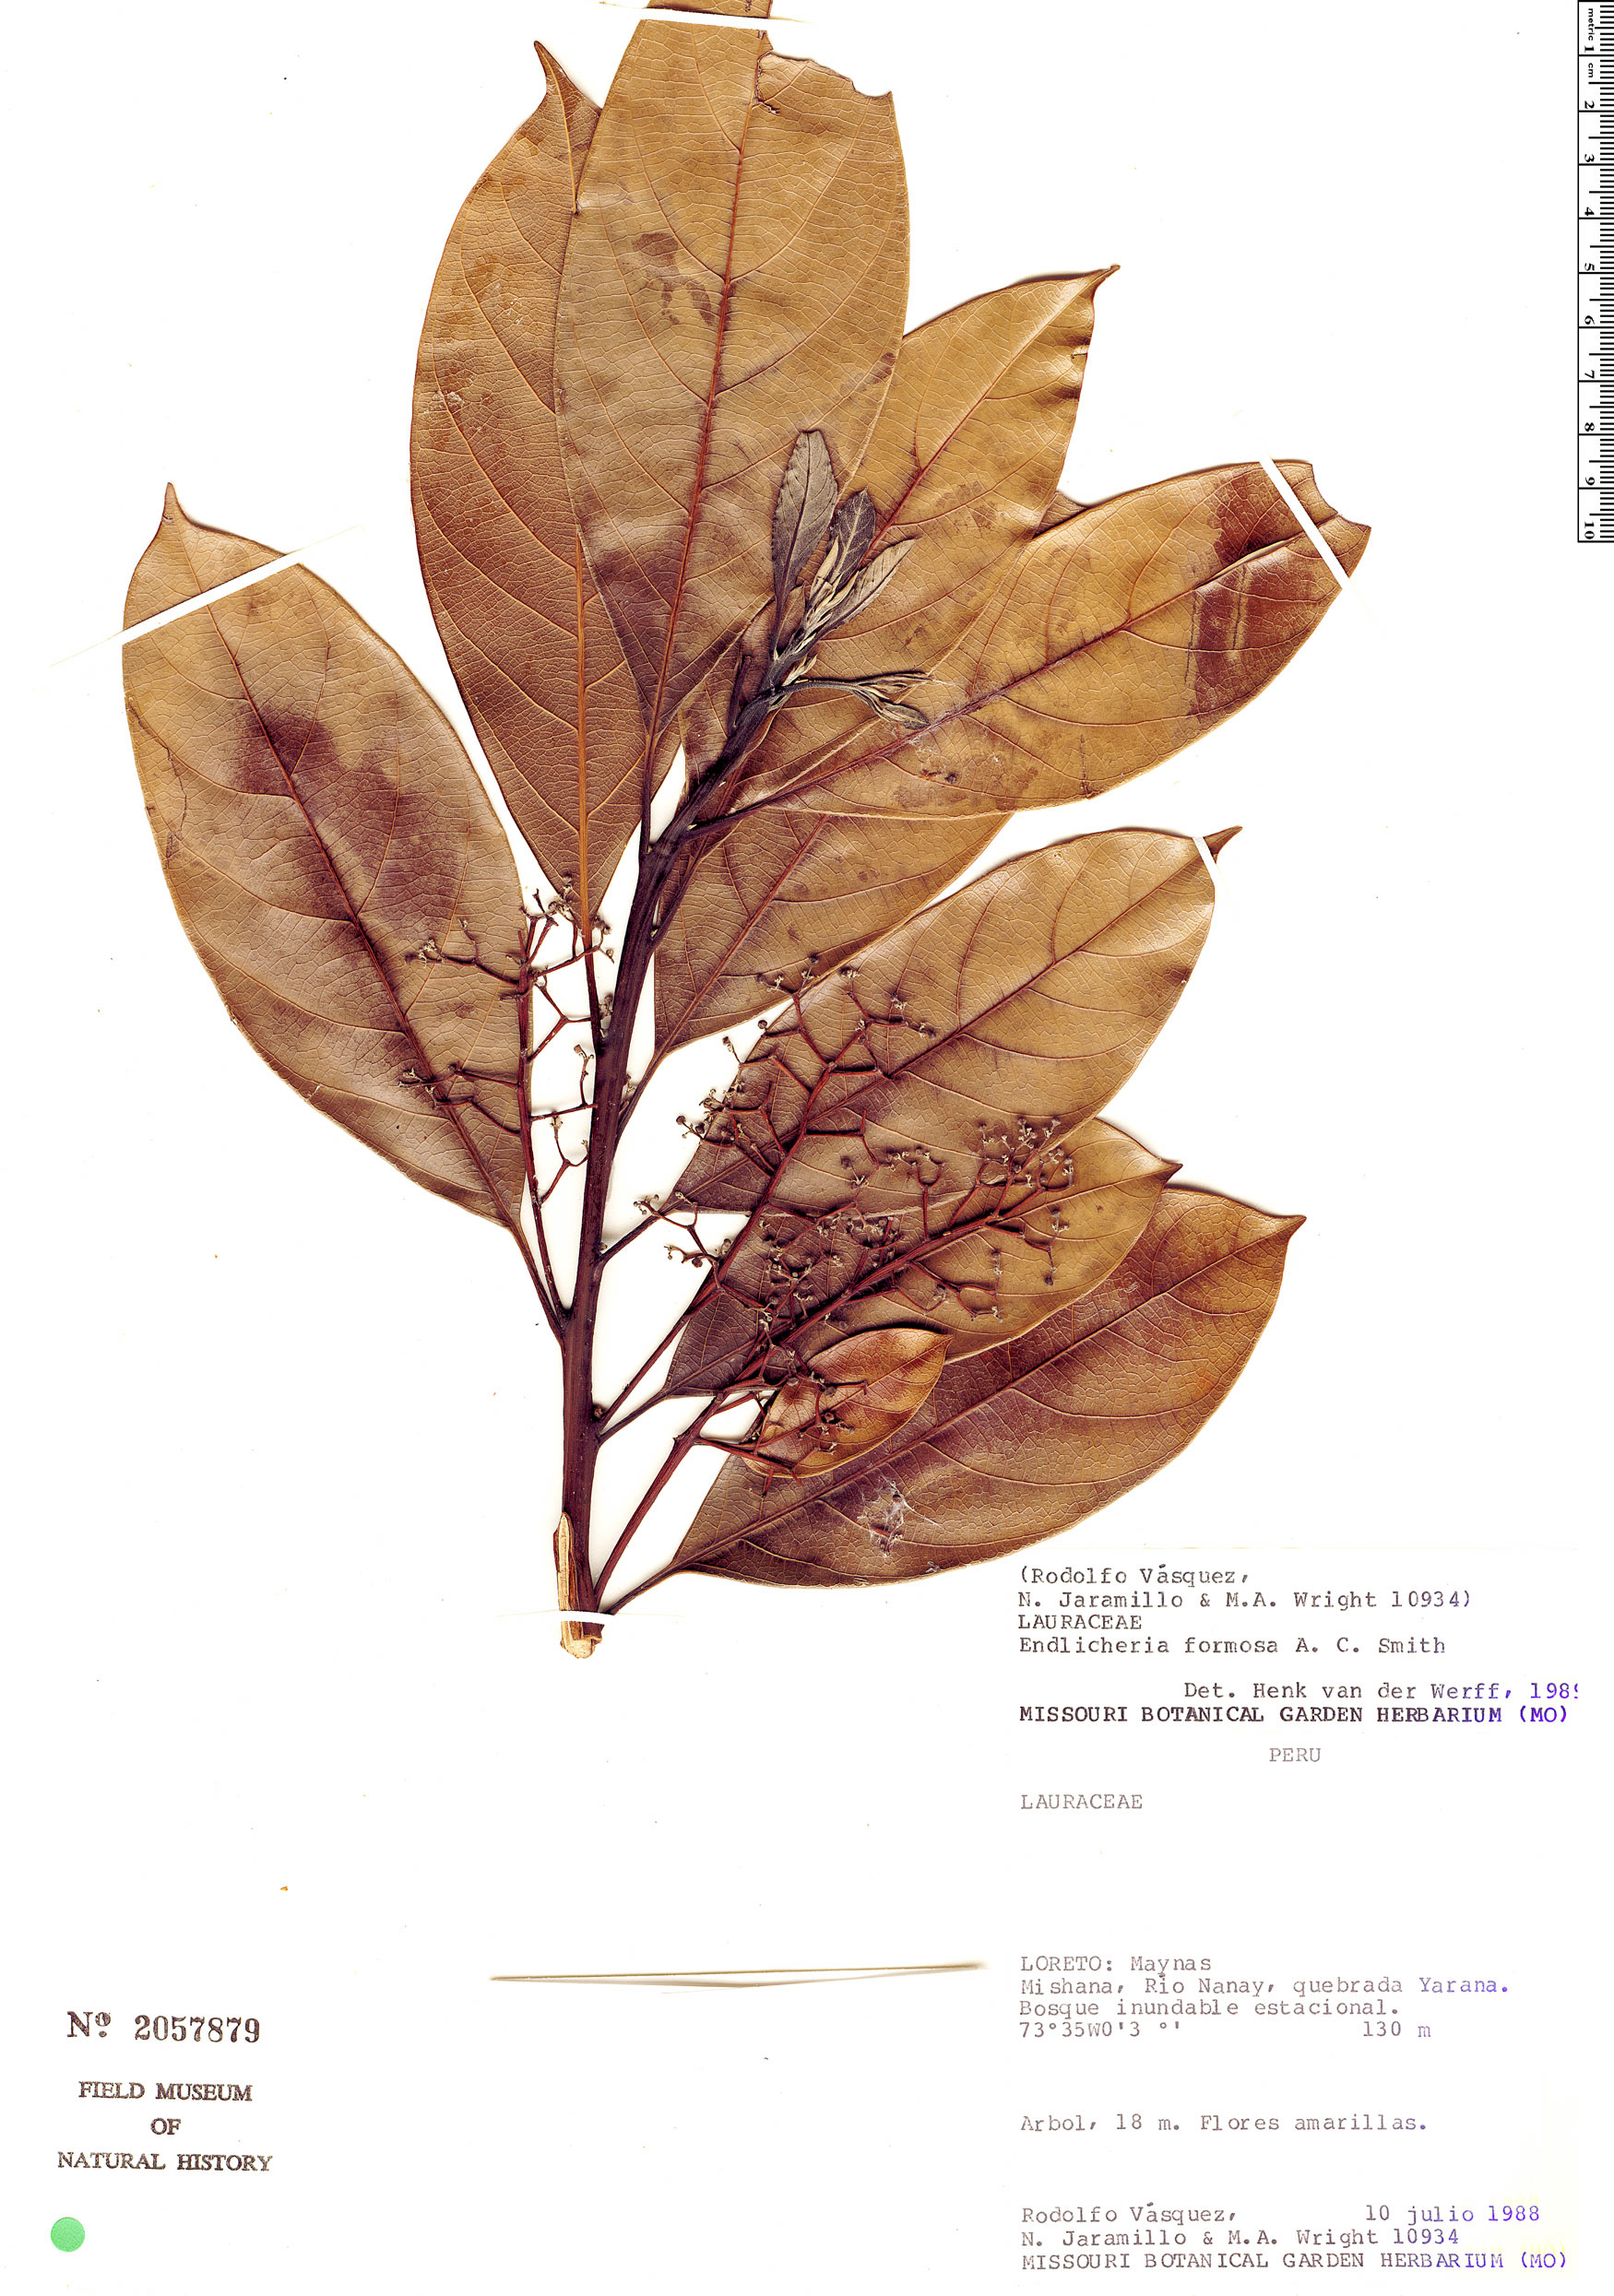 Specimen: Endlicheria formosa